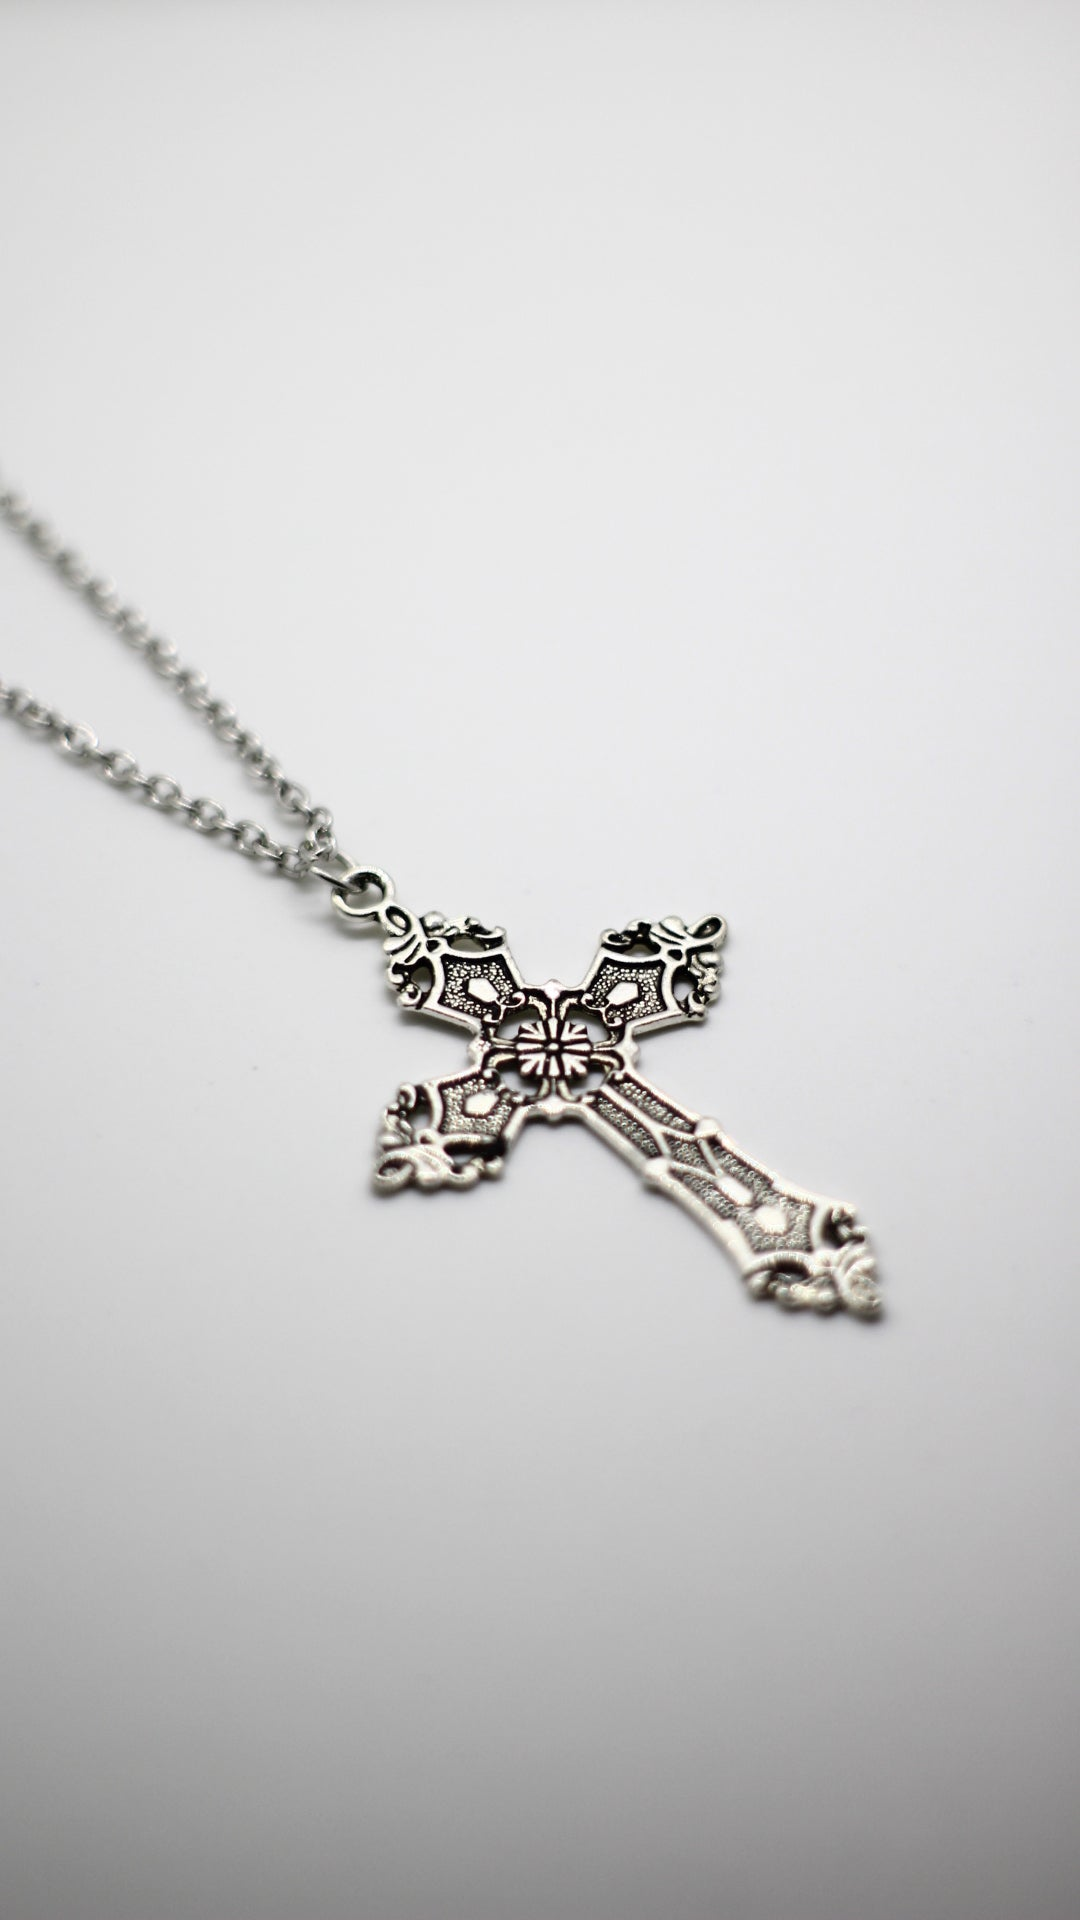 Image of Antique Cross Chain